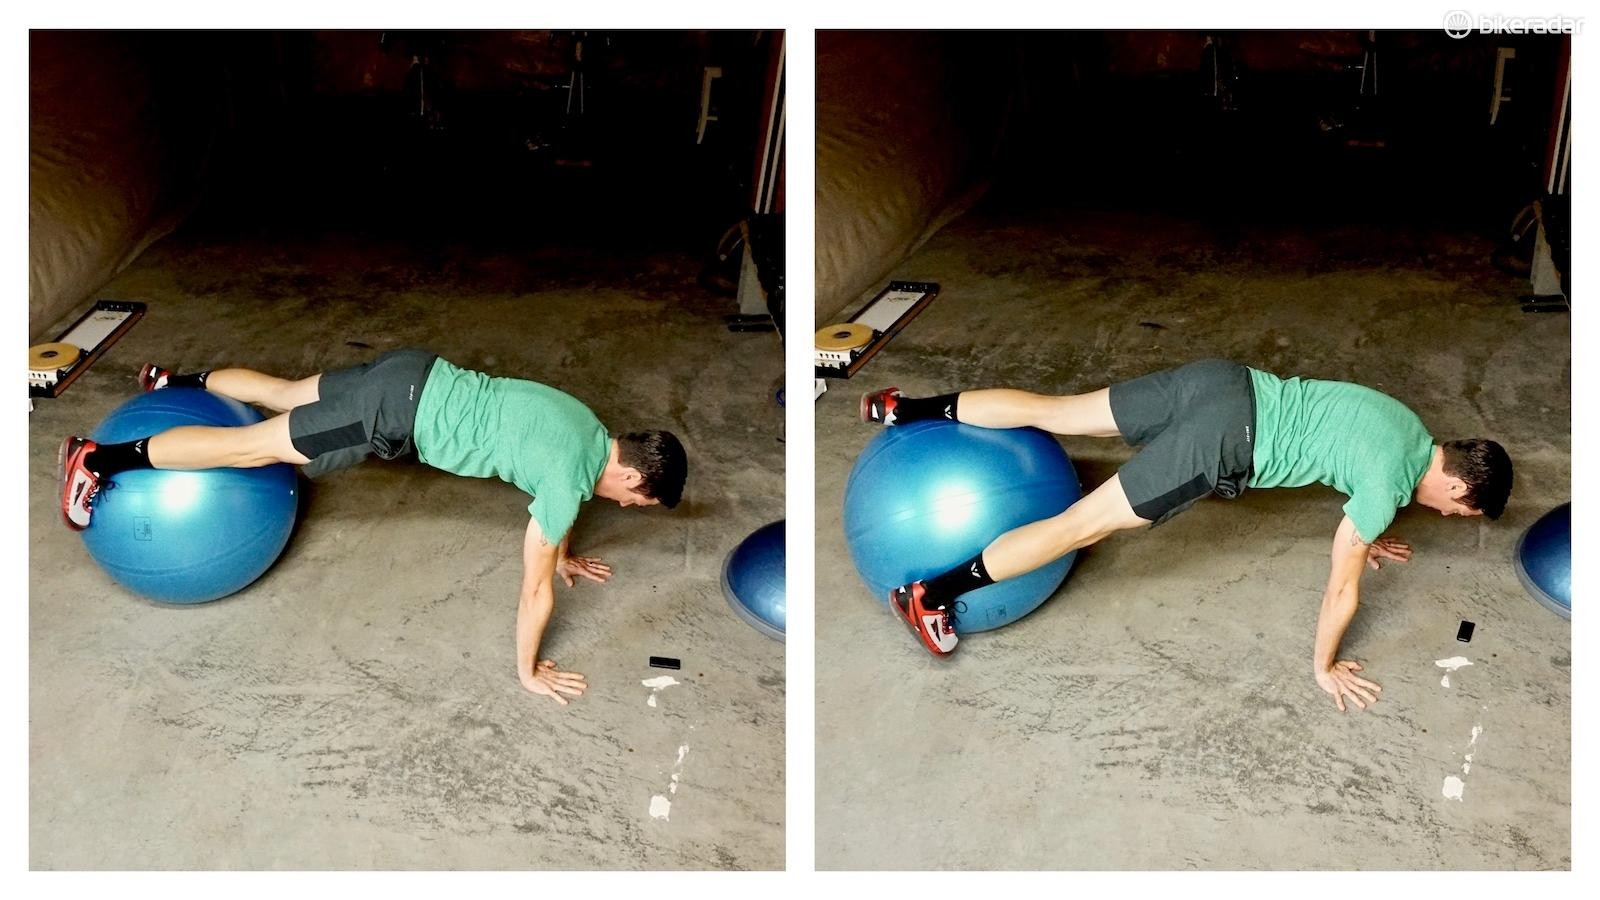 Prone rotations over a ball activate every abdominal muscle group — increasing speed can generate an eccentric contraction too (in addition to the concentric and isometric contractions present)